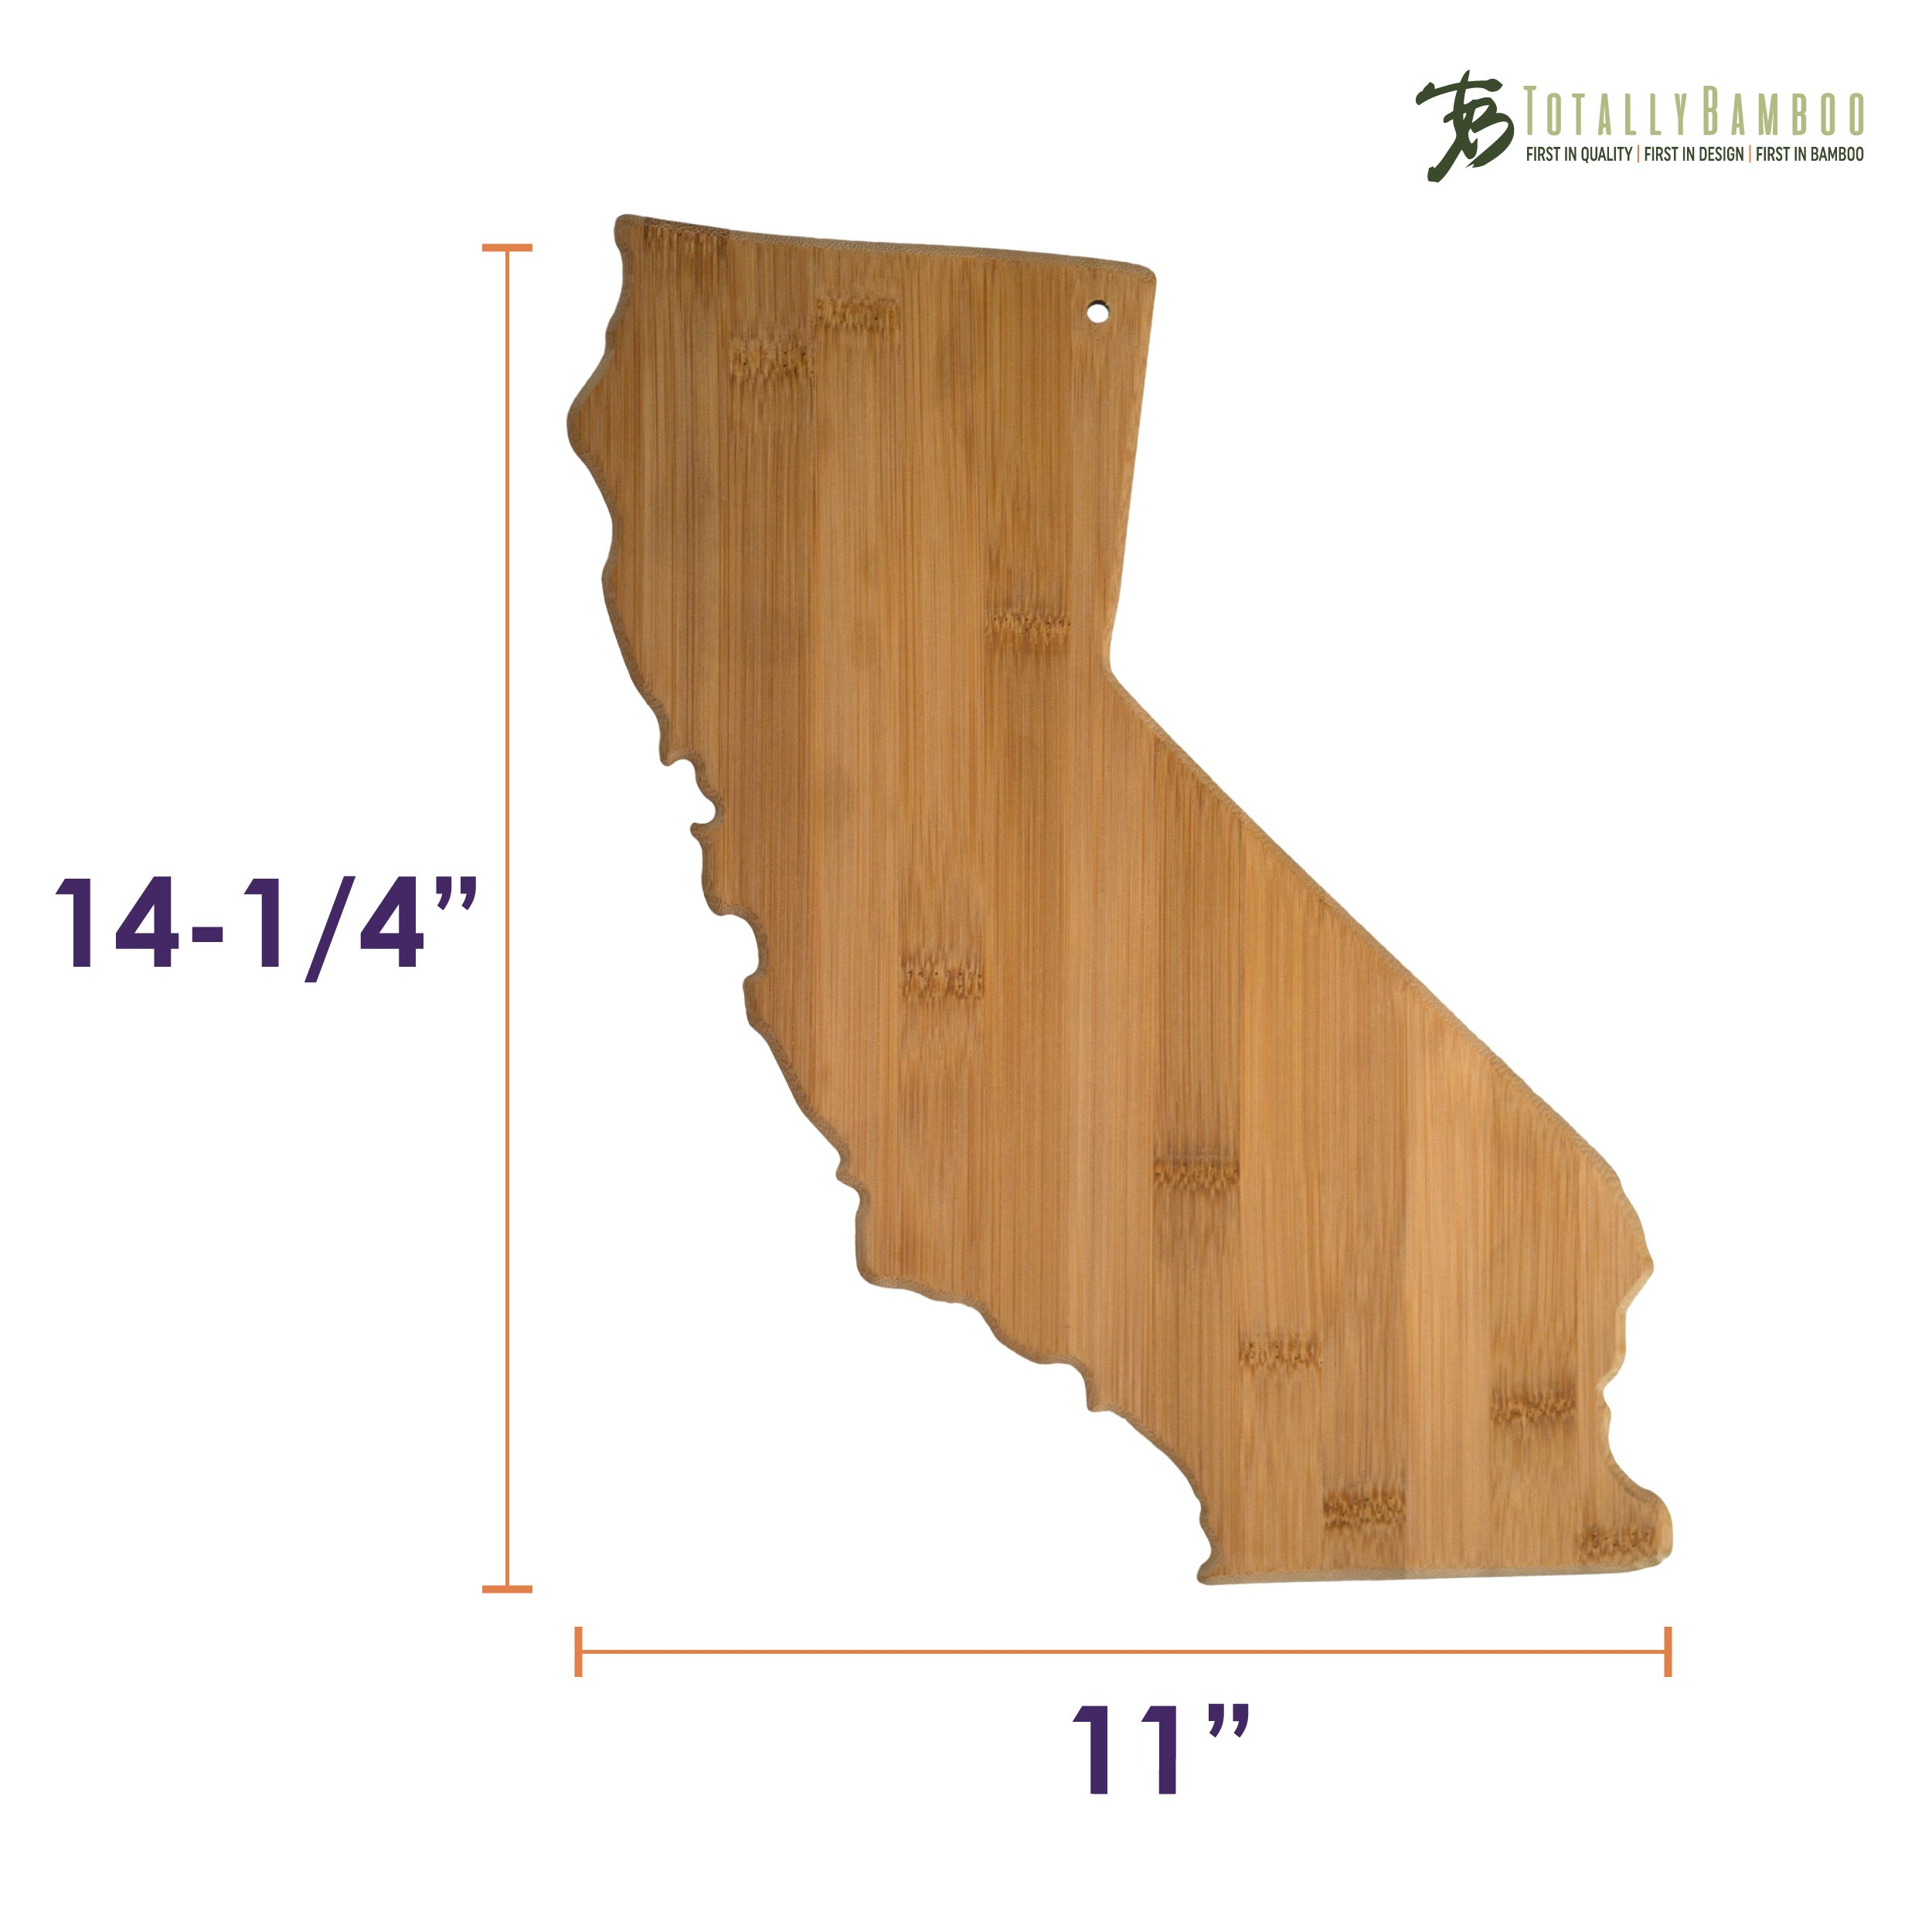 Totally Bamboo California State Shaped Bamboo Serving and Cutting Board by Totally Bamboo (Image #5)